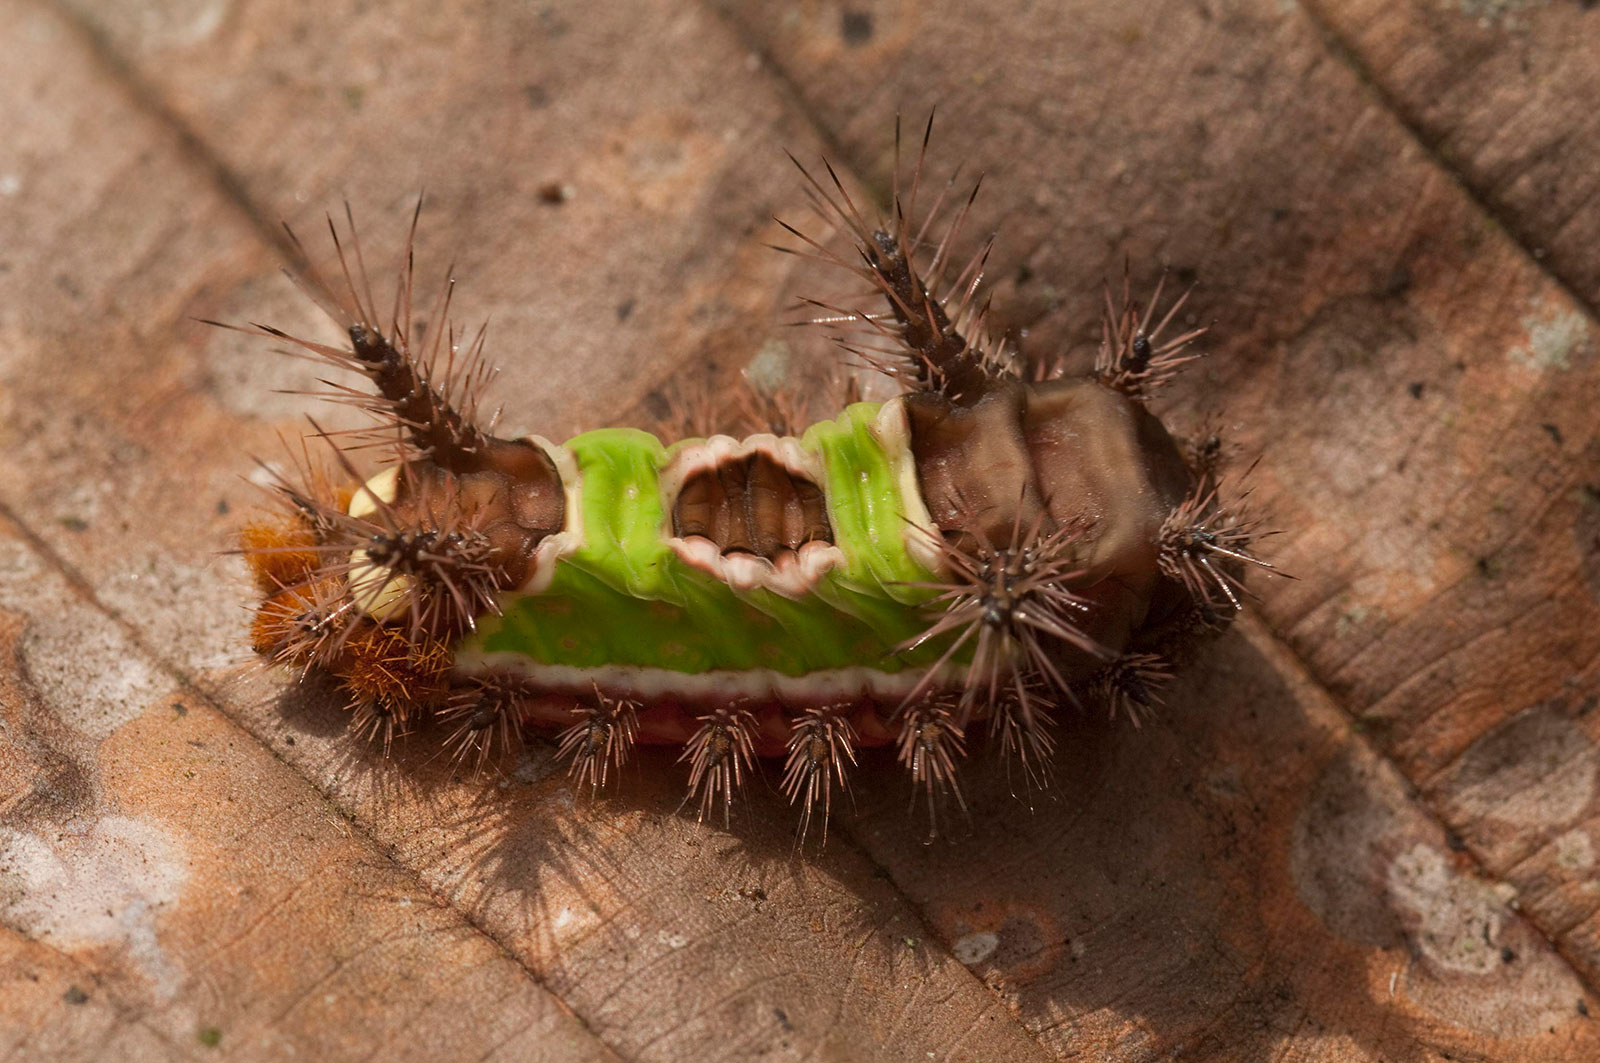 A spiny caterpillar on a leaf